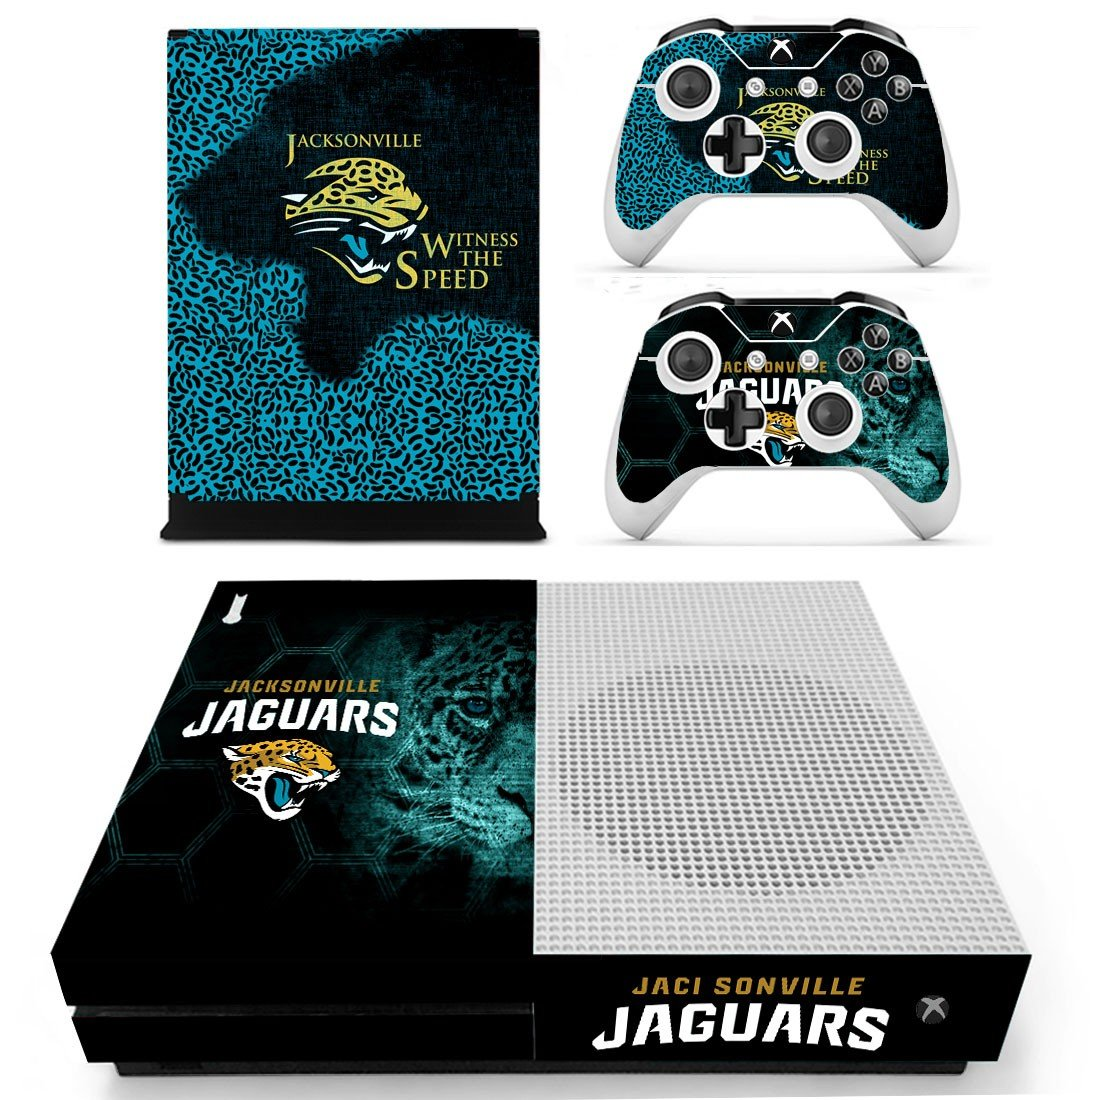 Jacksonville Jaguars skin decal for Xbox one S console and controllers